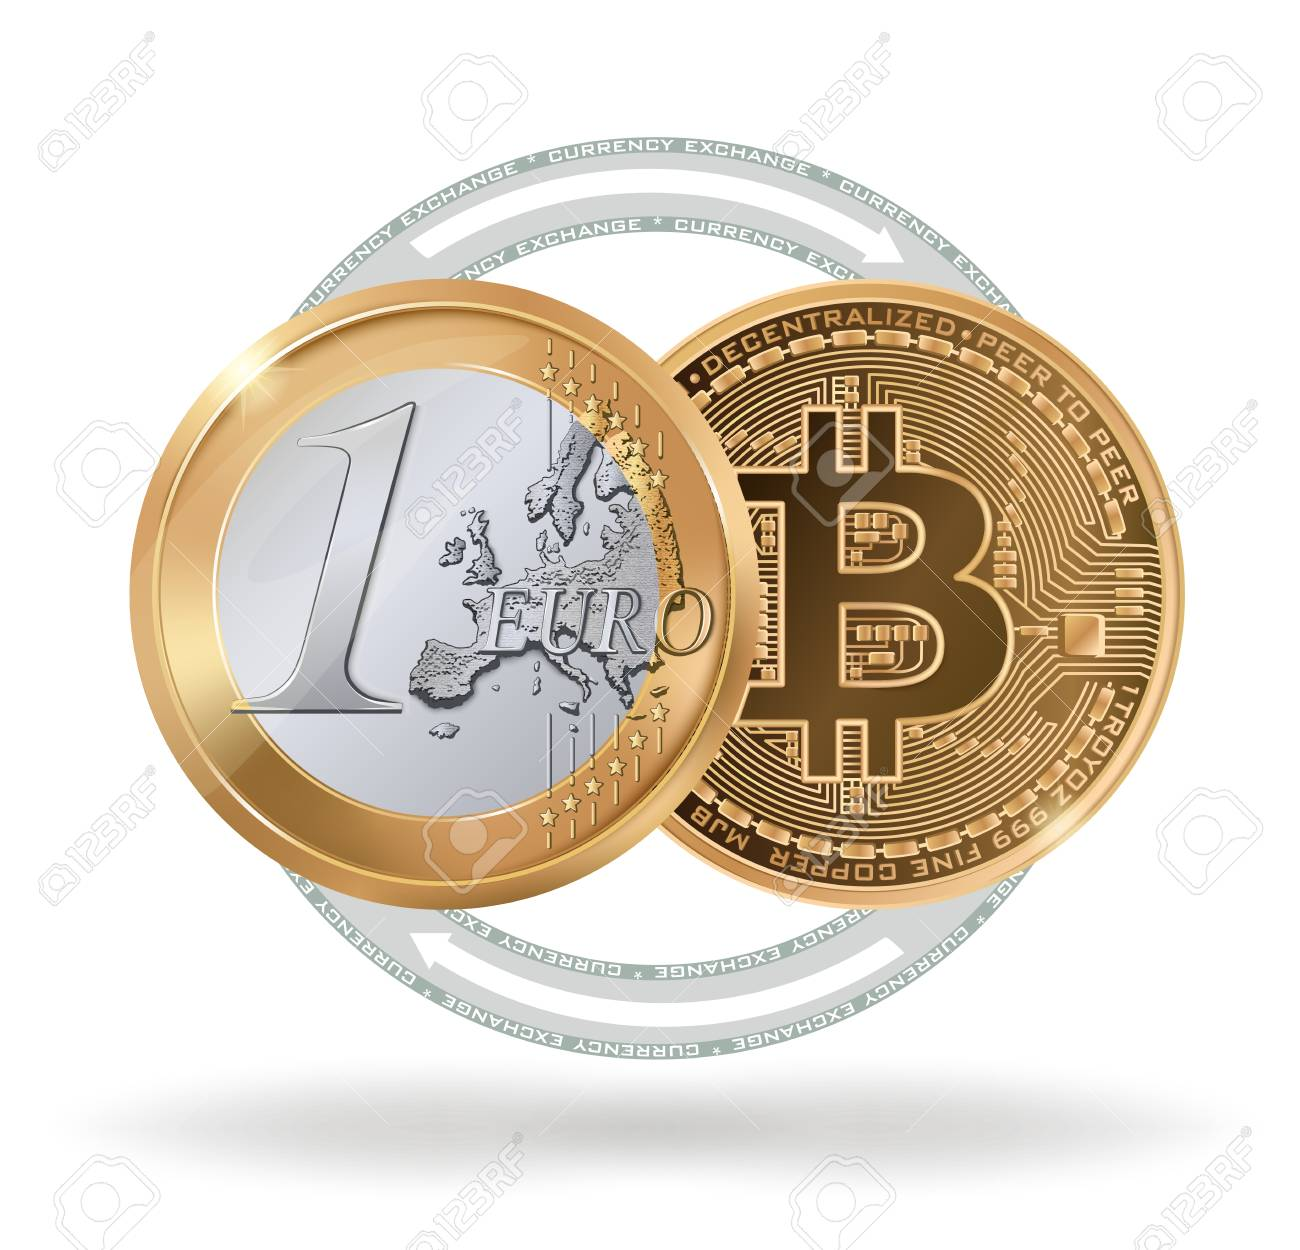 Realistic 1 Euro coin and 1 bitcoin as a symbol of exchange  cryptocurrency